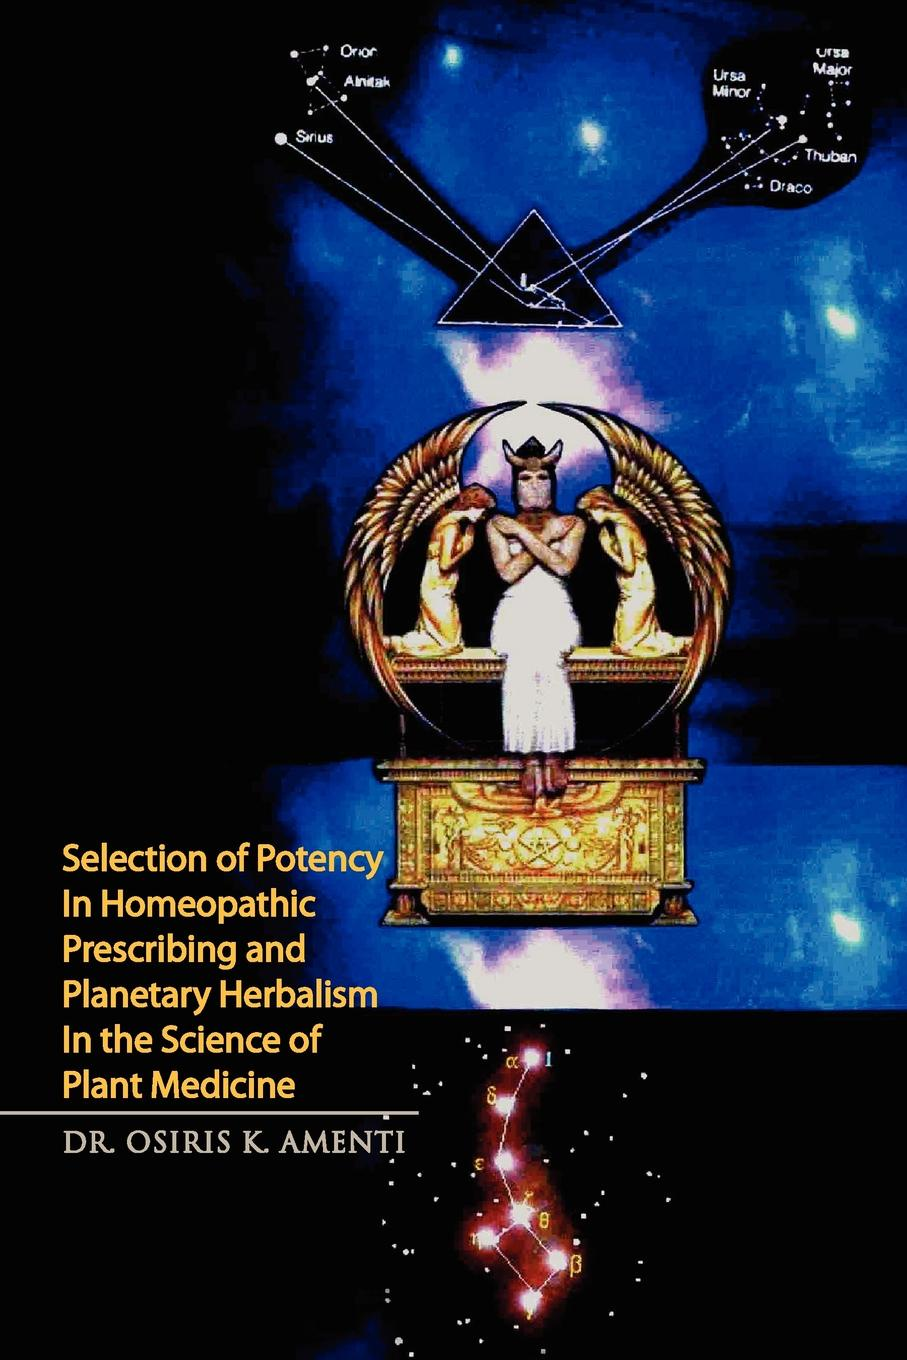 Osiris K. Amenti, Dr Osiris K. Amenti Selection of Potency in Homeopathic Prescribing and Planetary Herbalism in the Science of Plant Medicine the denver homeopathic college